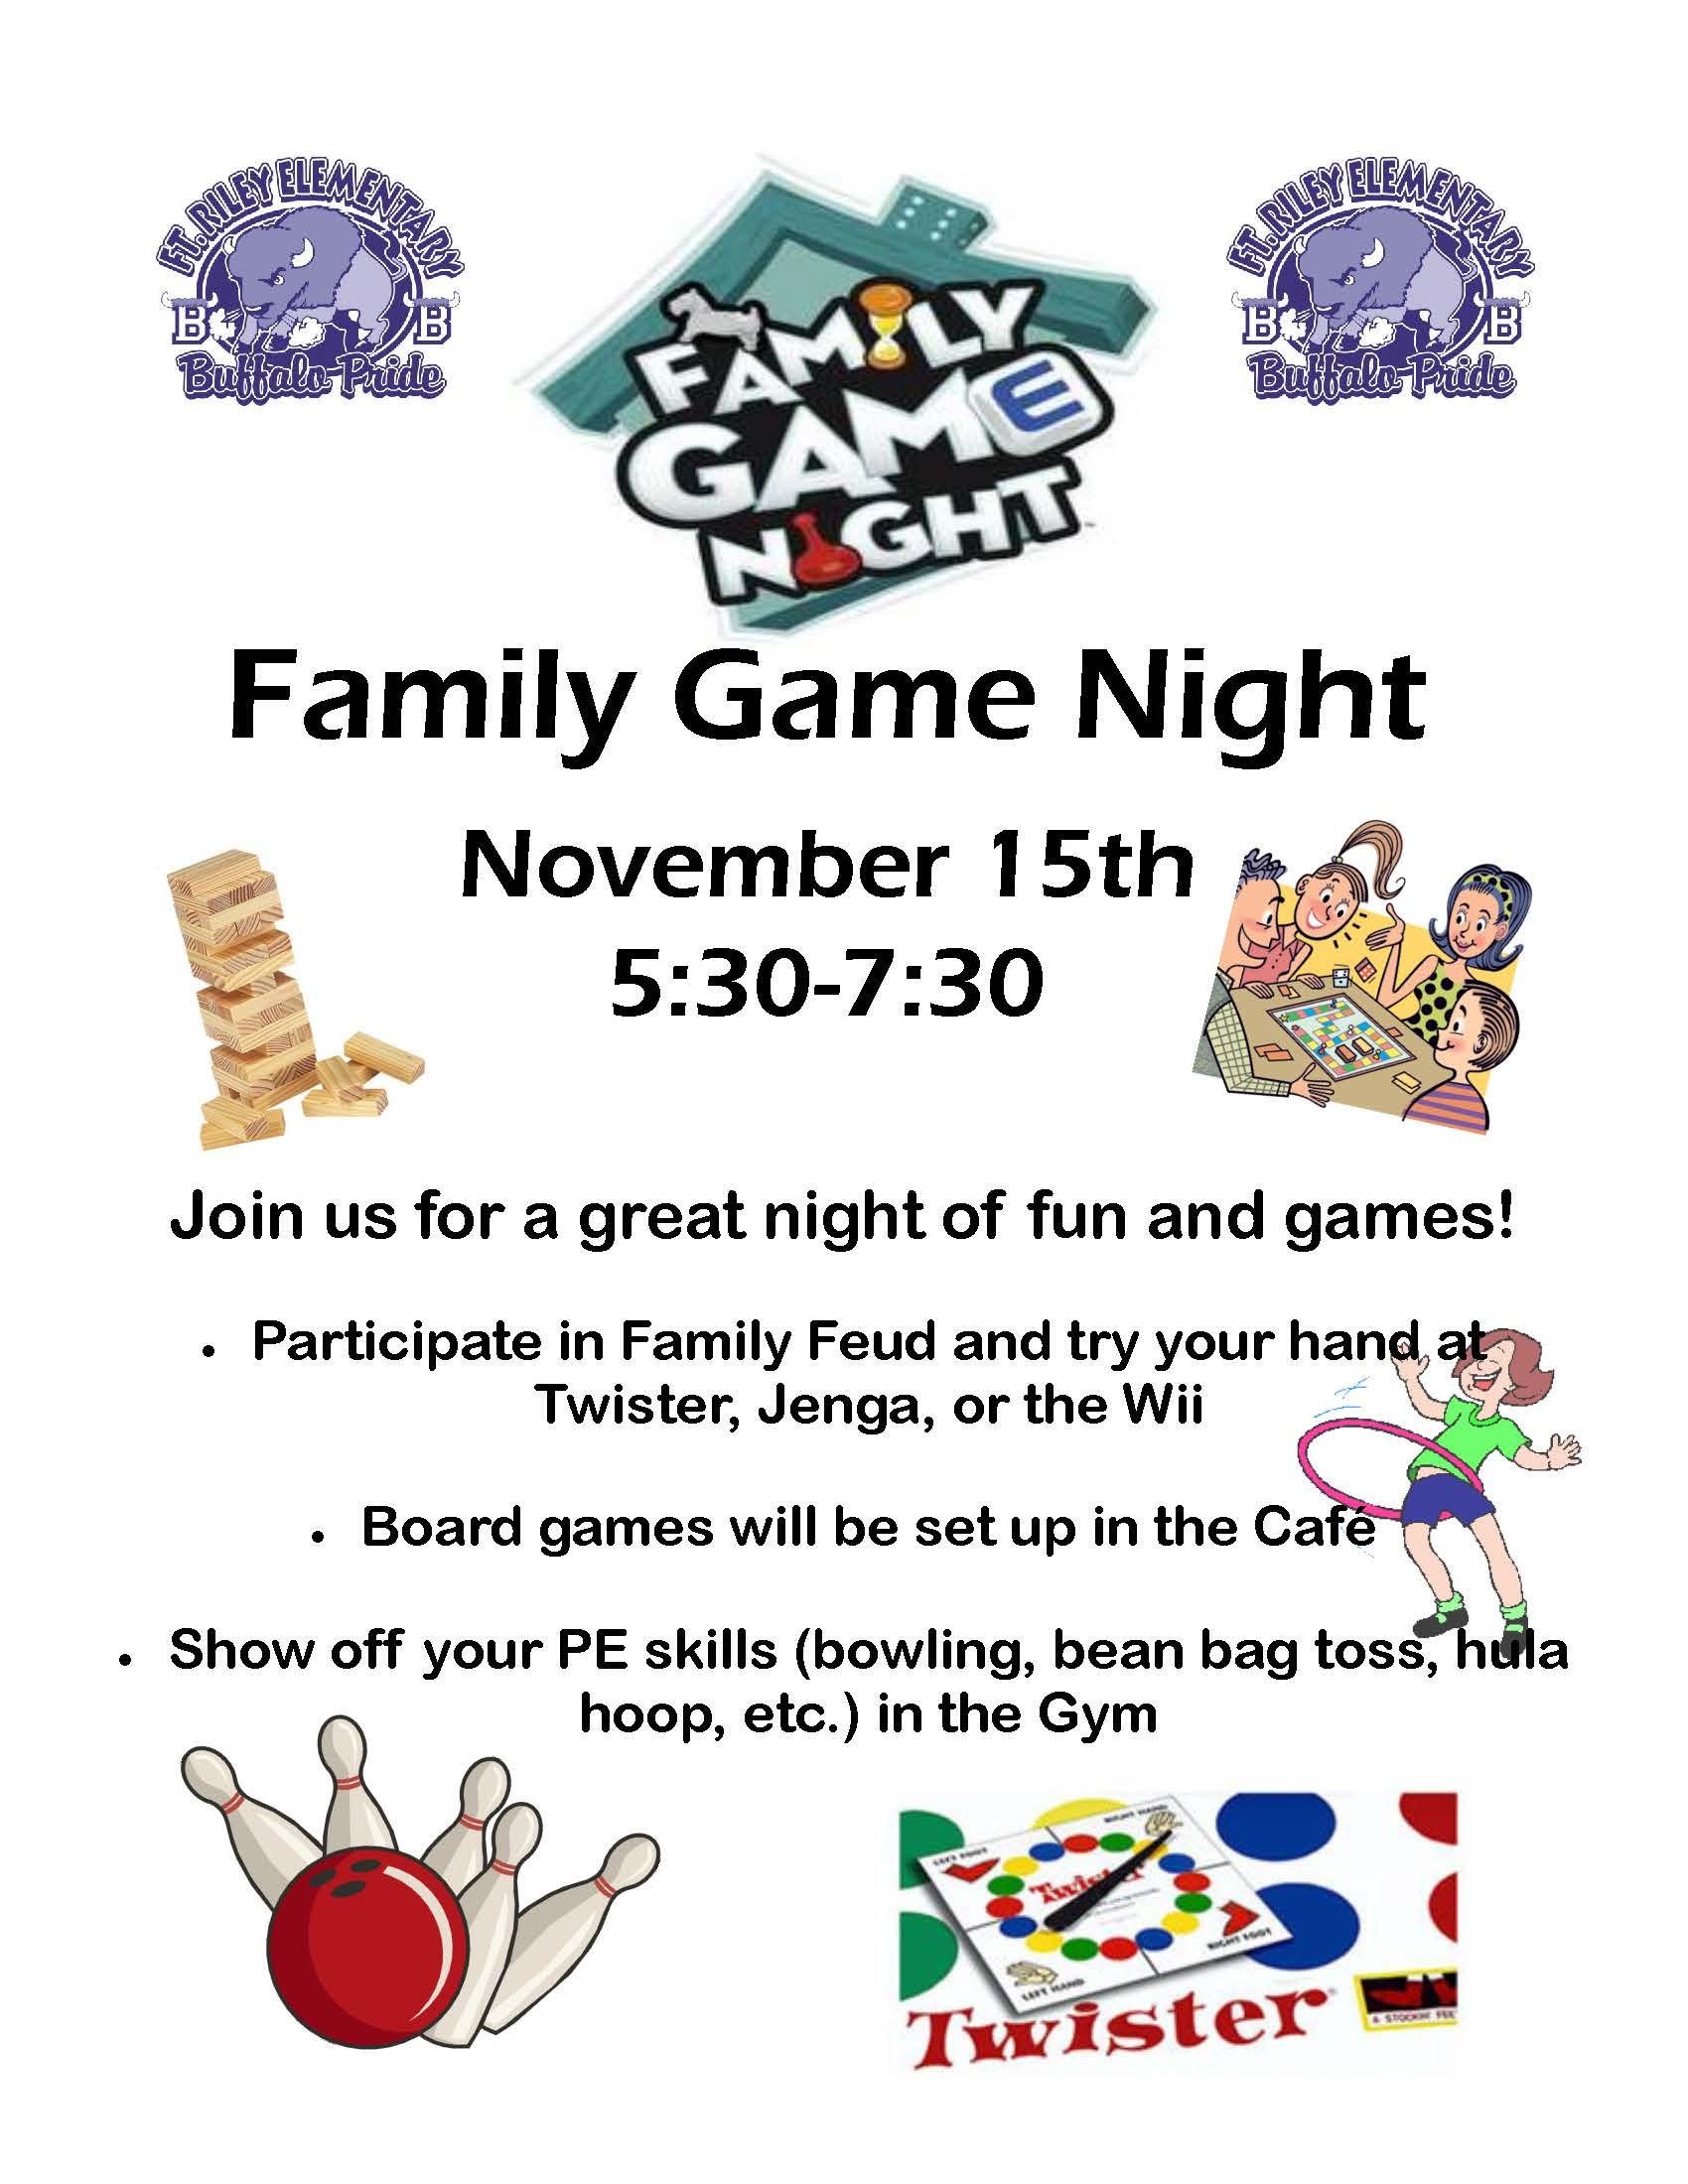 Fort Riley Elementary Family Game Night Flyer